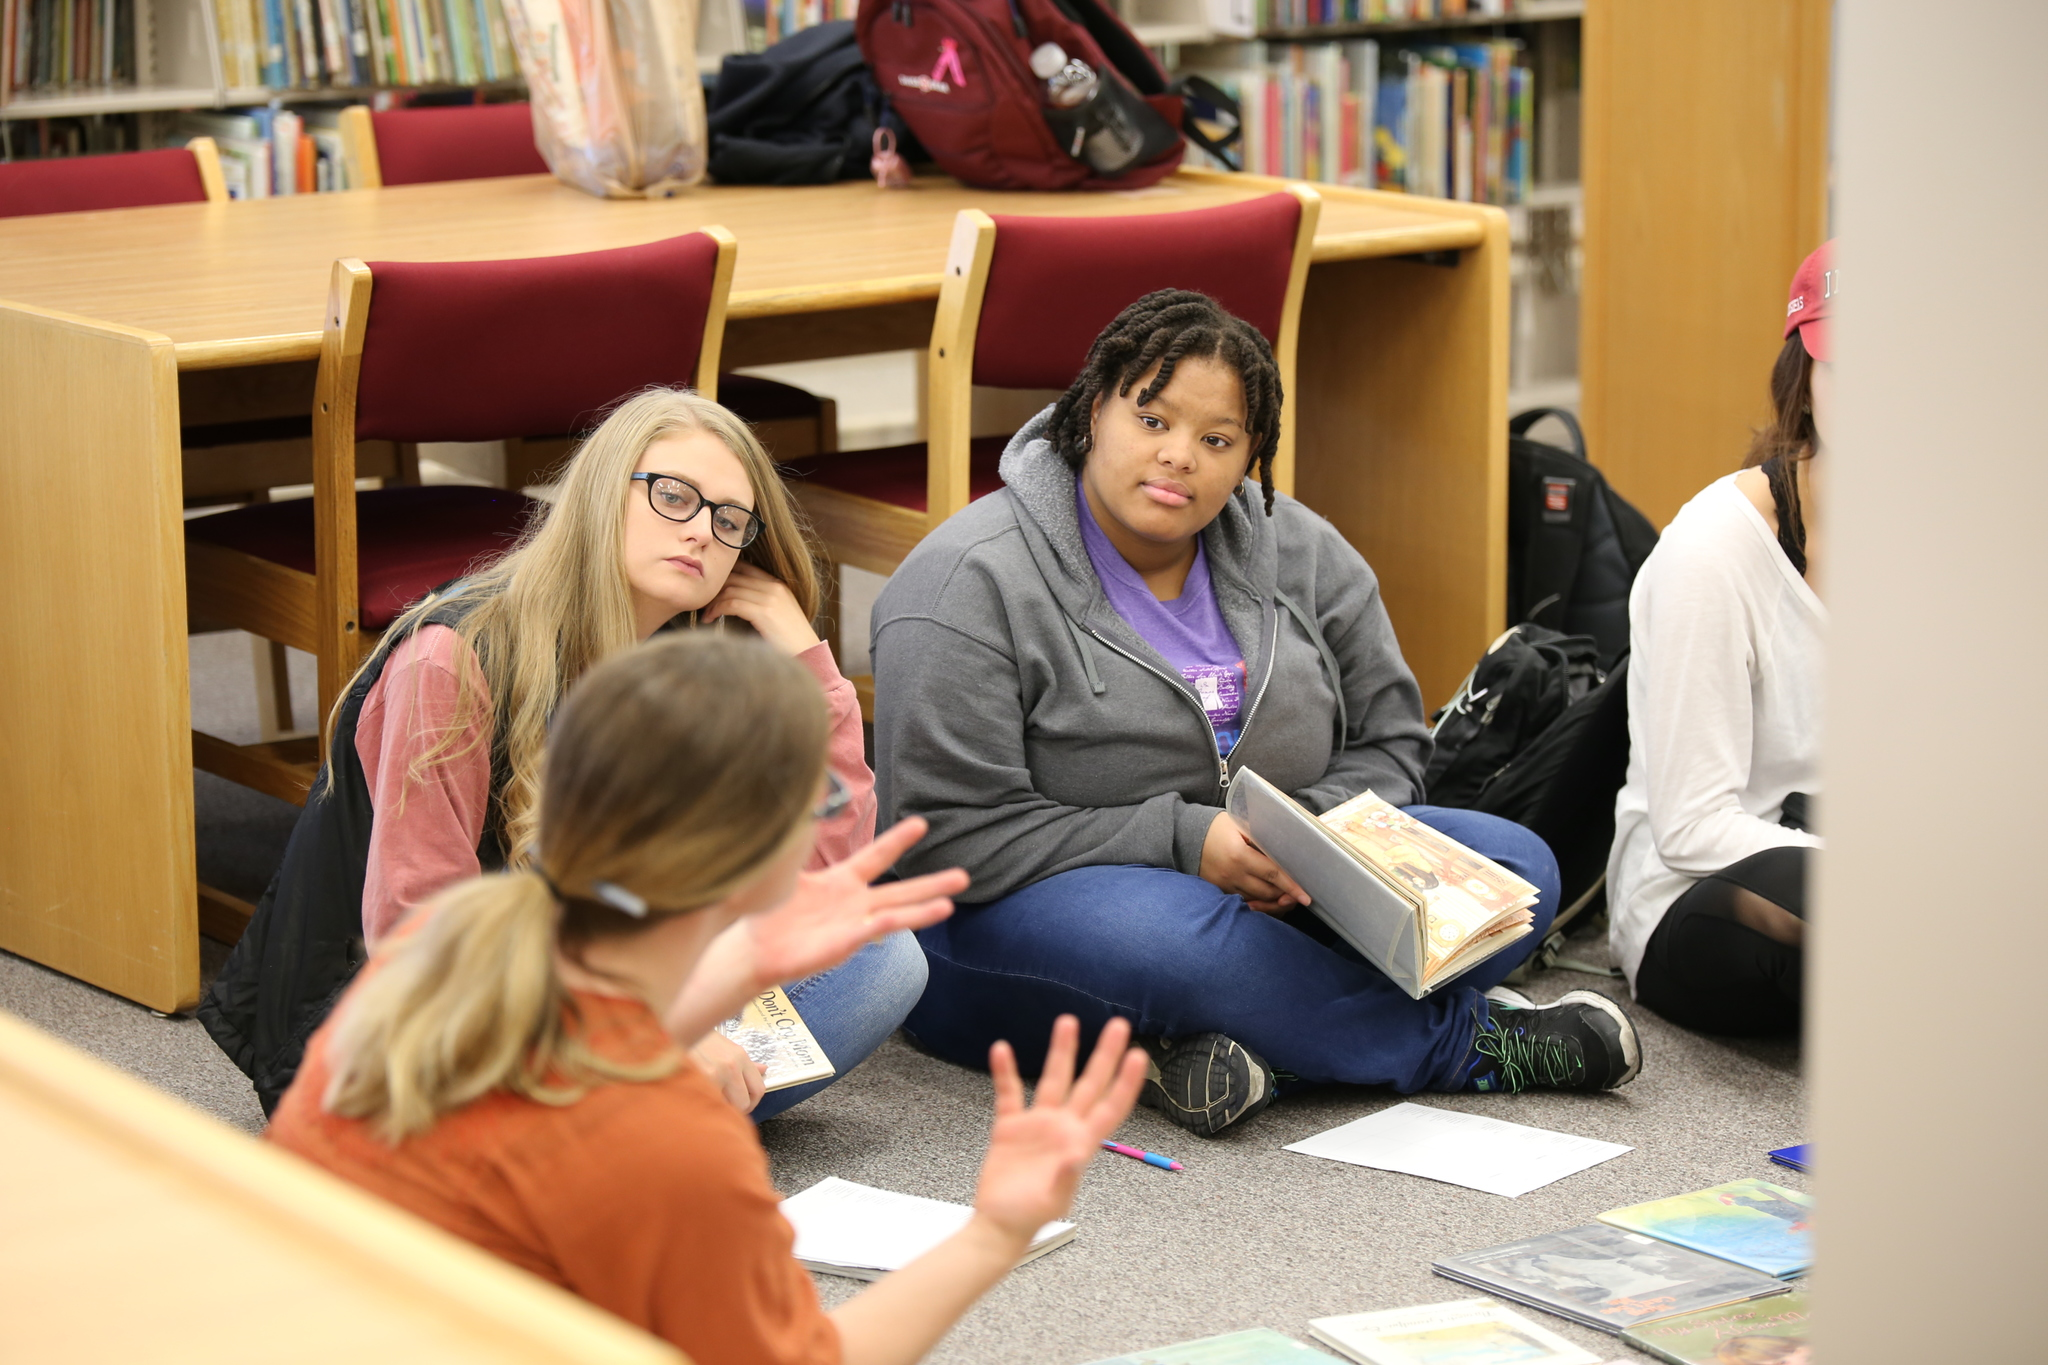 students and librarian discussing literature